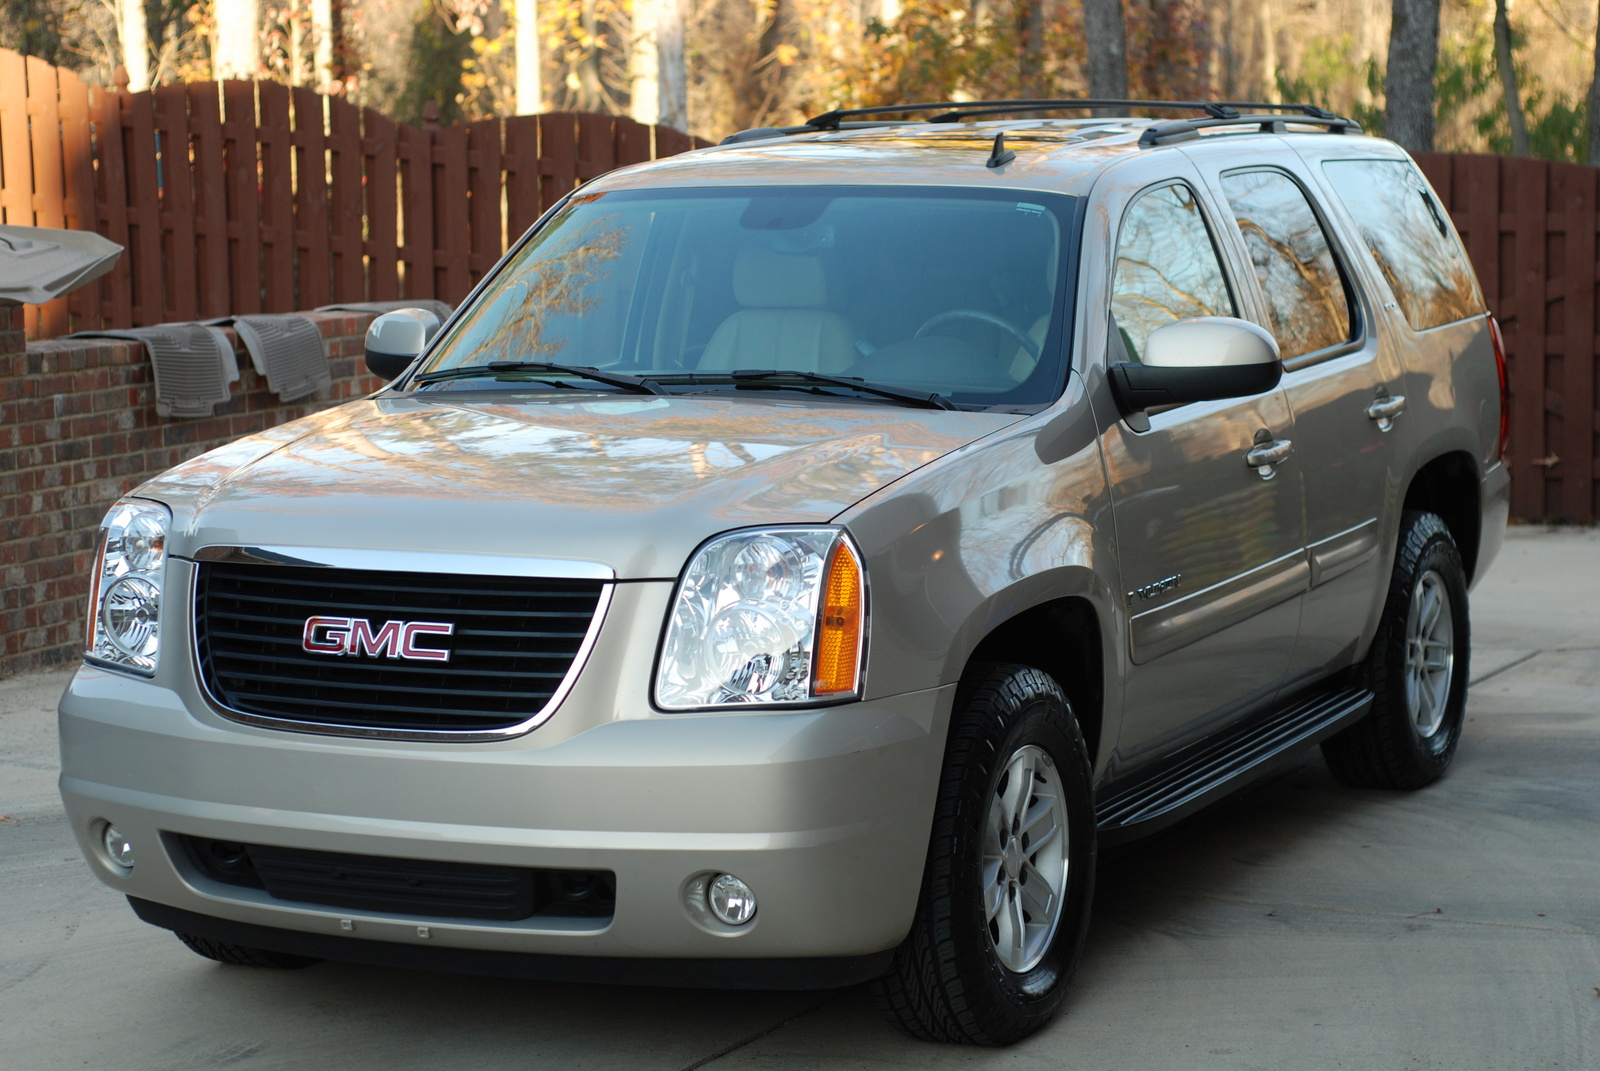 2007 chevy yukon reviews wiring diagram ethernet cable gmc pictures cargurus